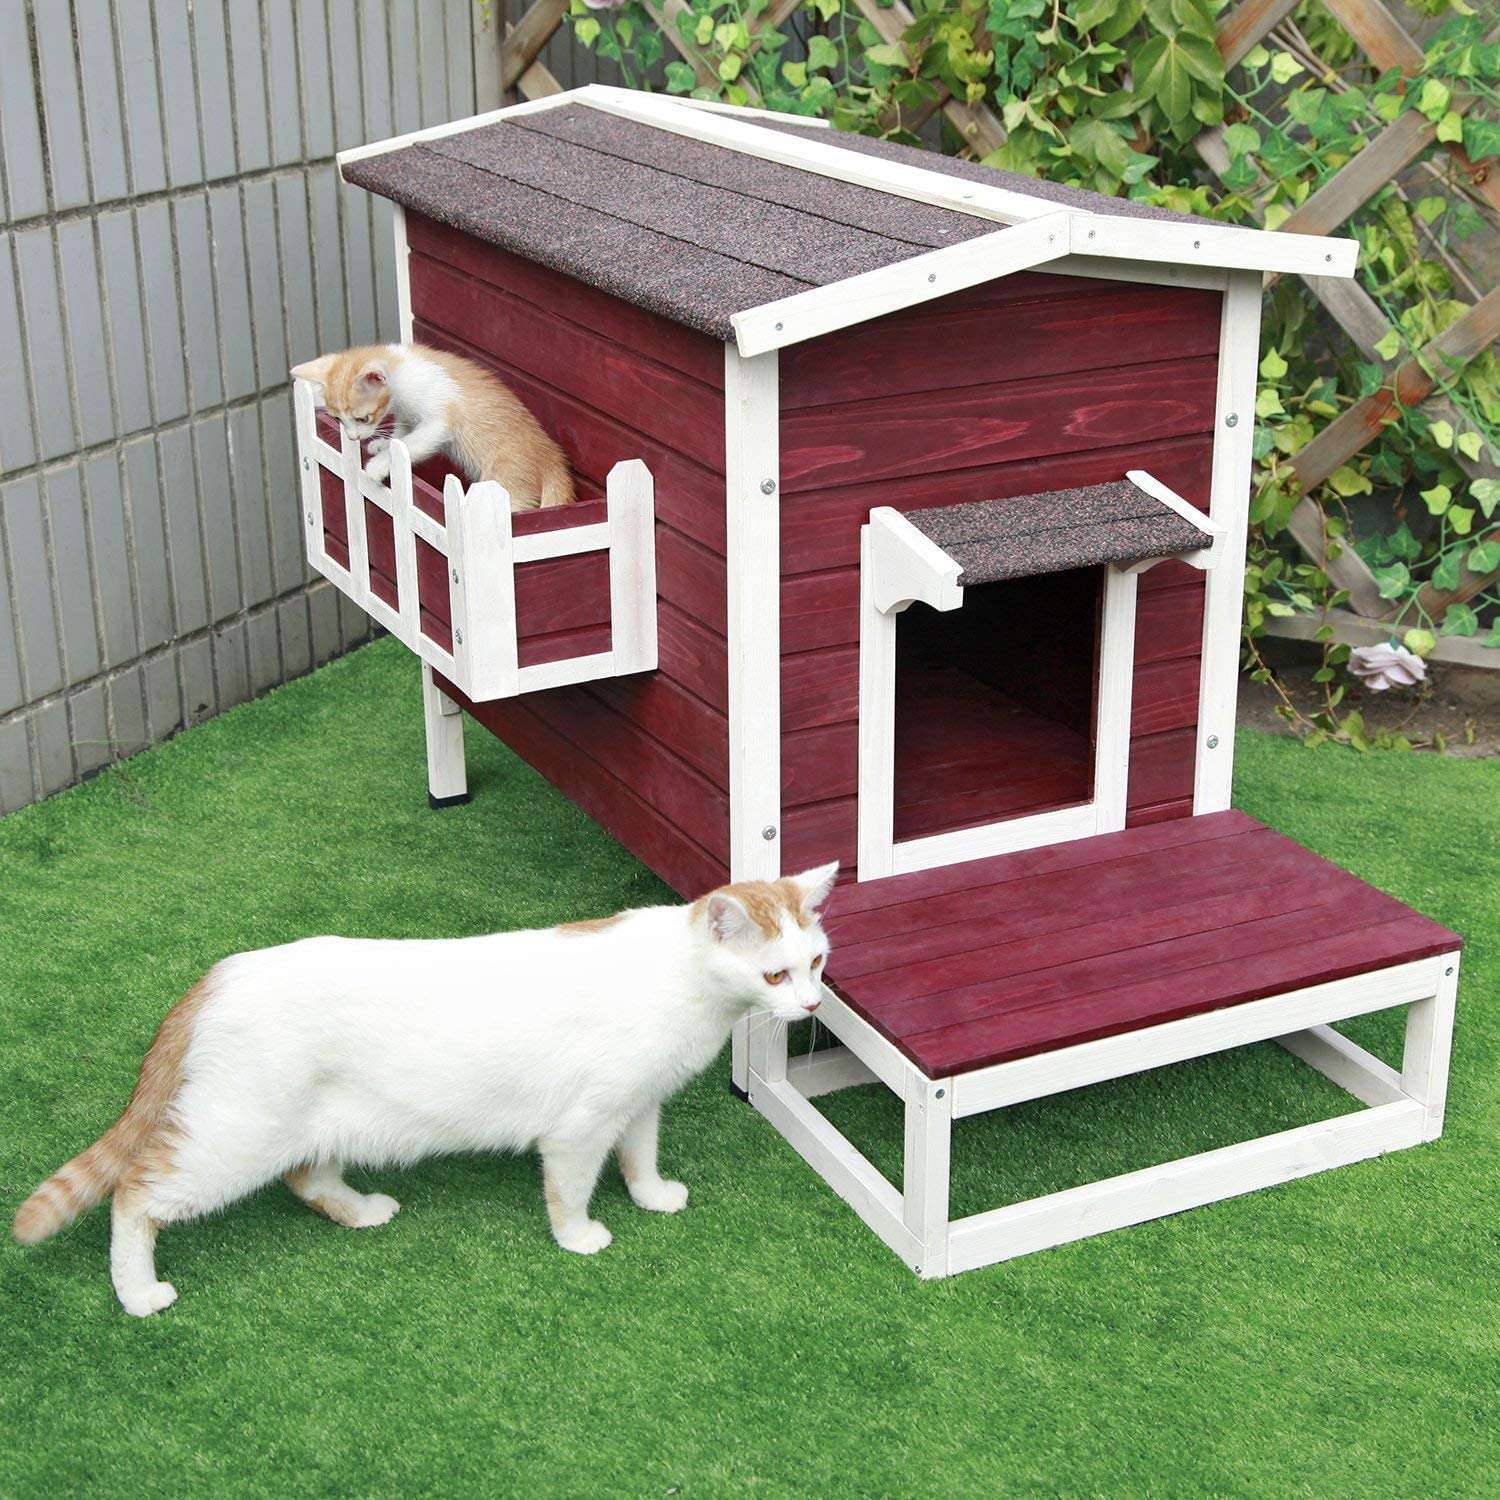 2. Petsfit Weatherproof Outdoor Cat House with Stair